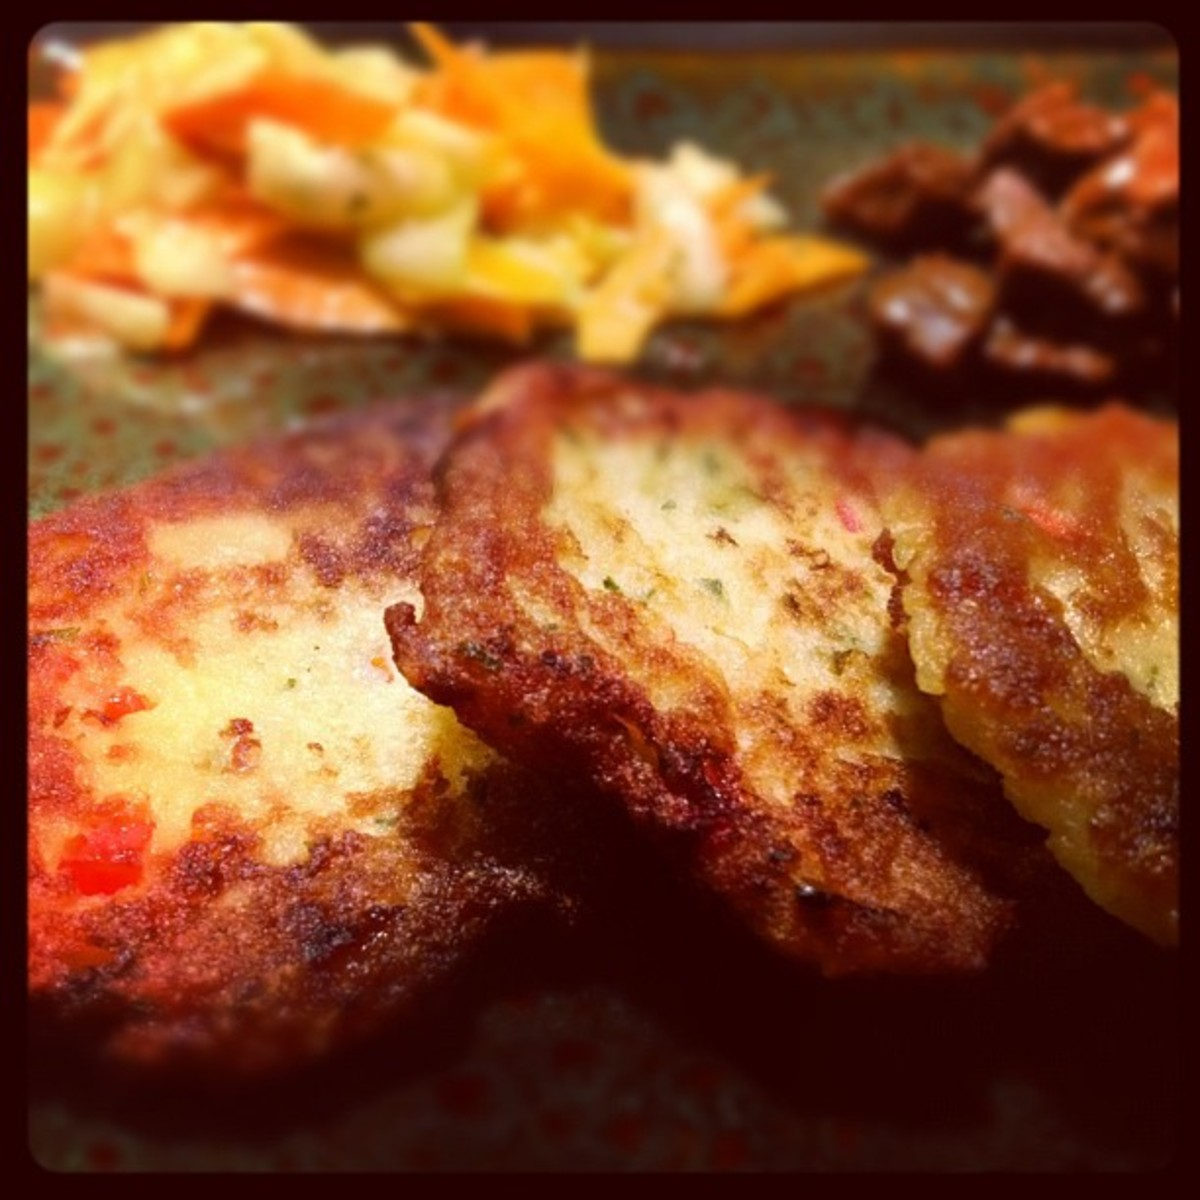 Learn how to make potato pancakes like these.